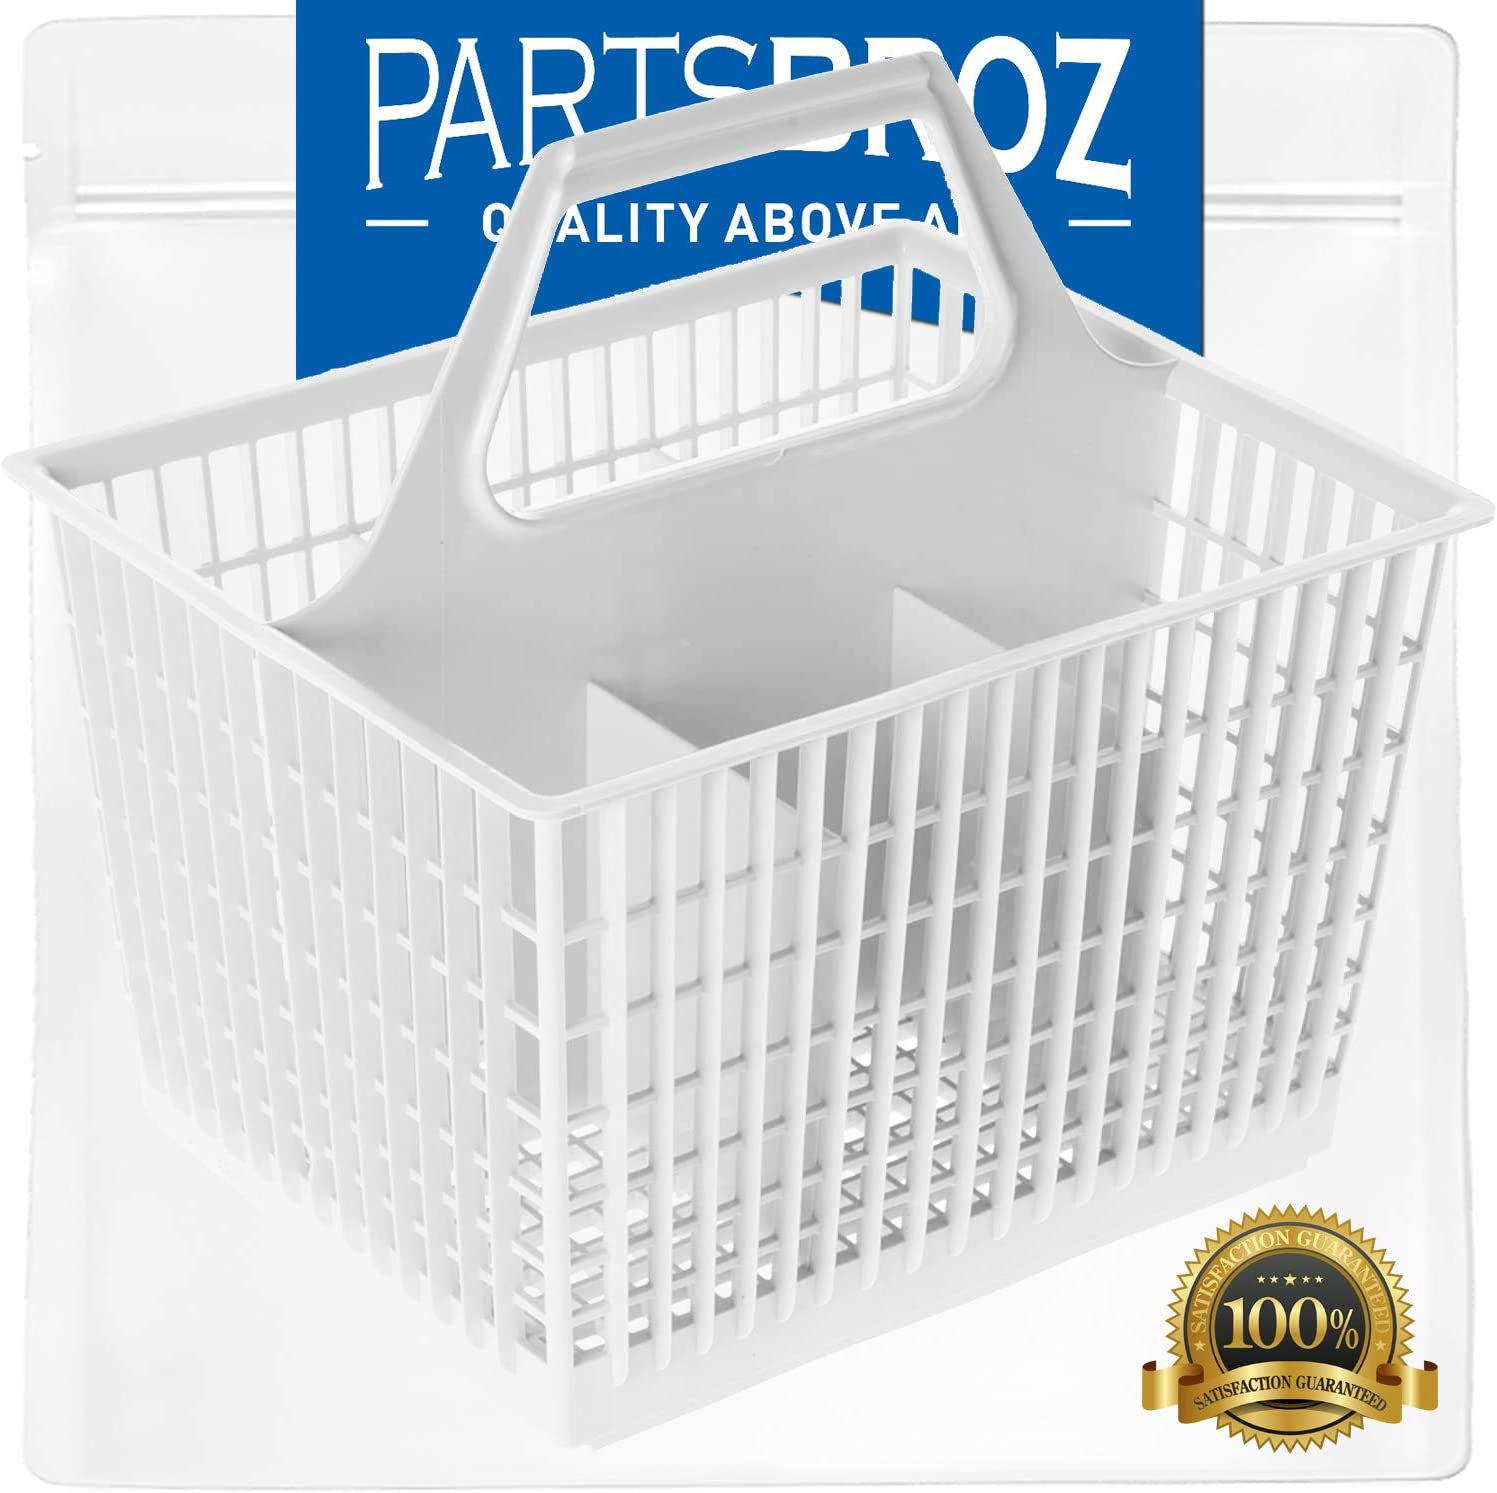 WD28X265 Silverware Basket with Handle by PartsBroz - Compatible with GE Dishwashers - Replaces 272327, AH261346, EA261346, PM28X0318, PM28X245LR, PM28X318, PS261346, WD12X0219